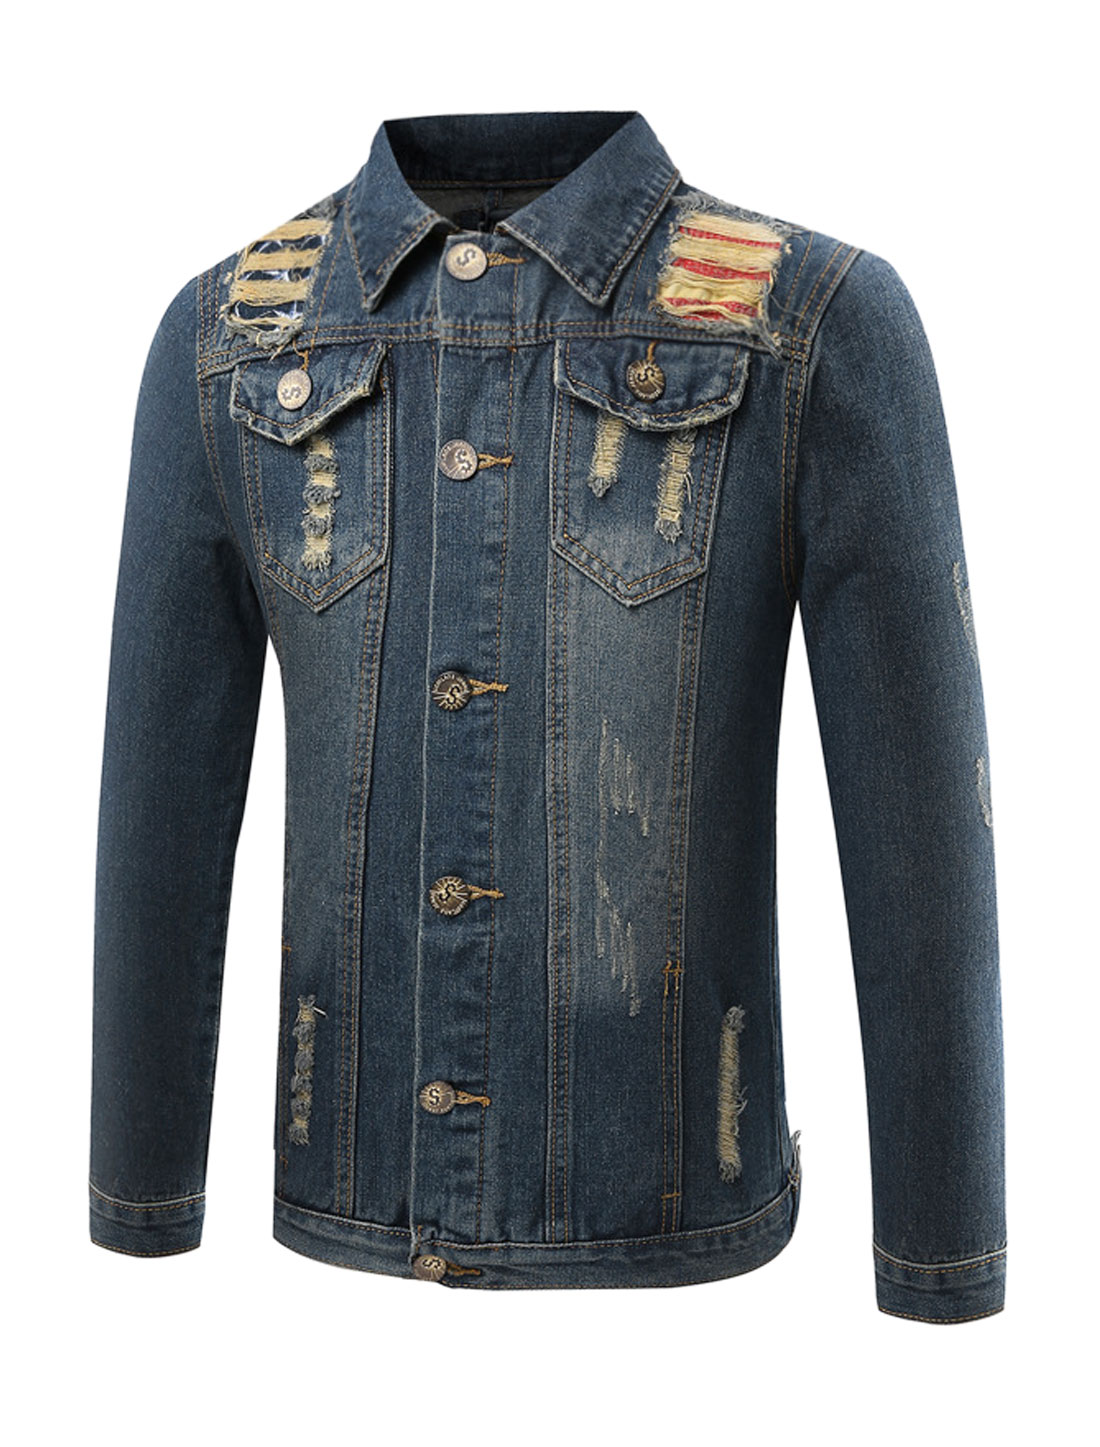 Man Flap Pockets Distressed Slim Fit Denim Jacket Blue S